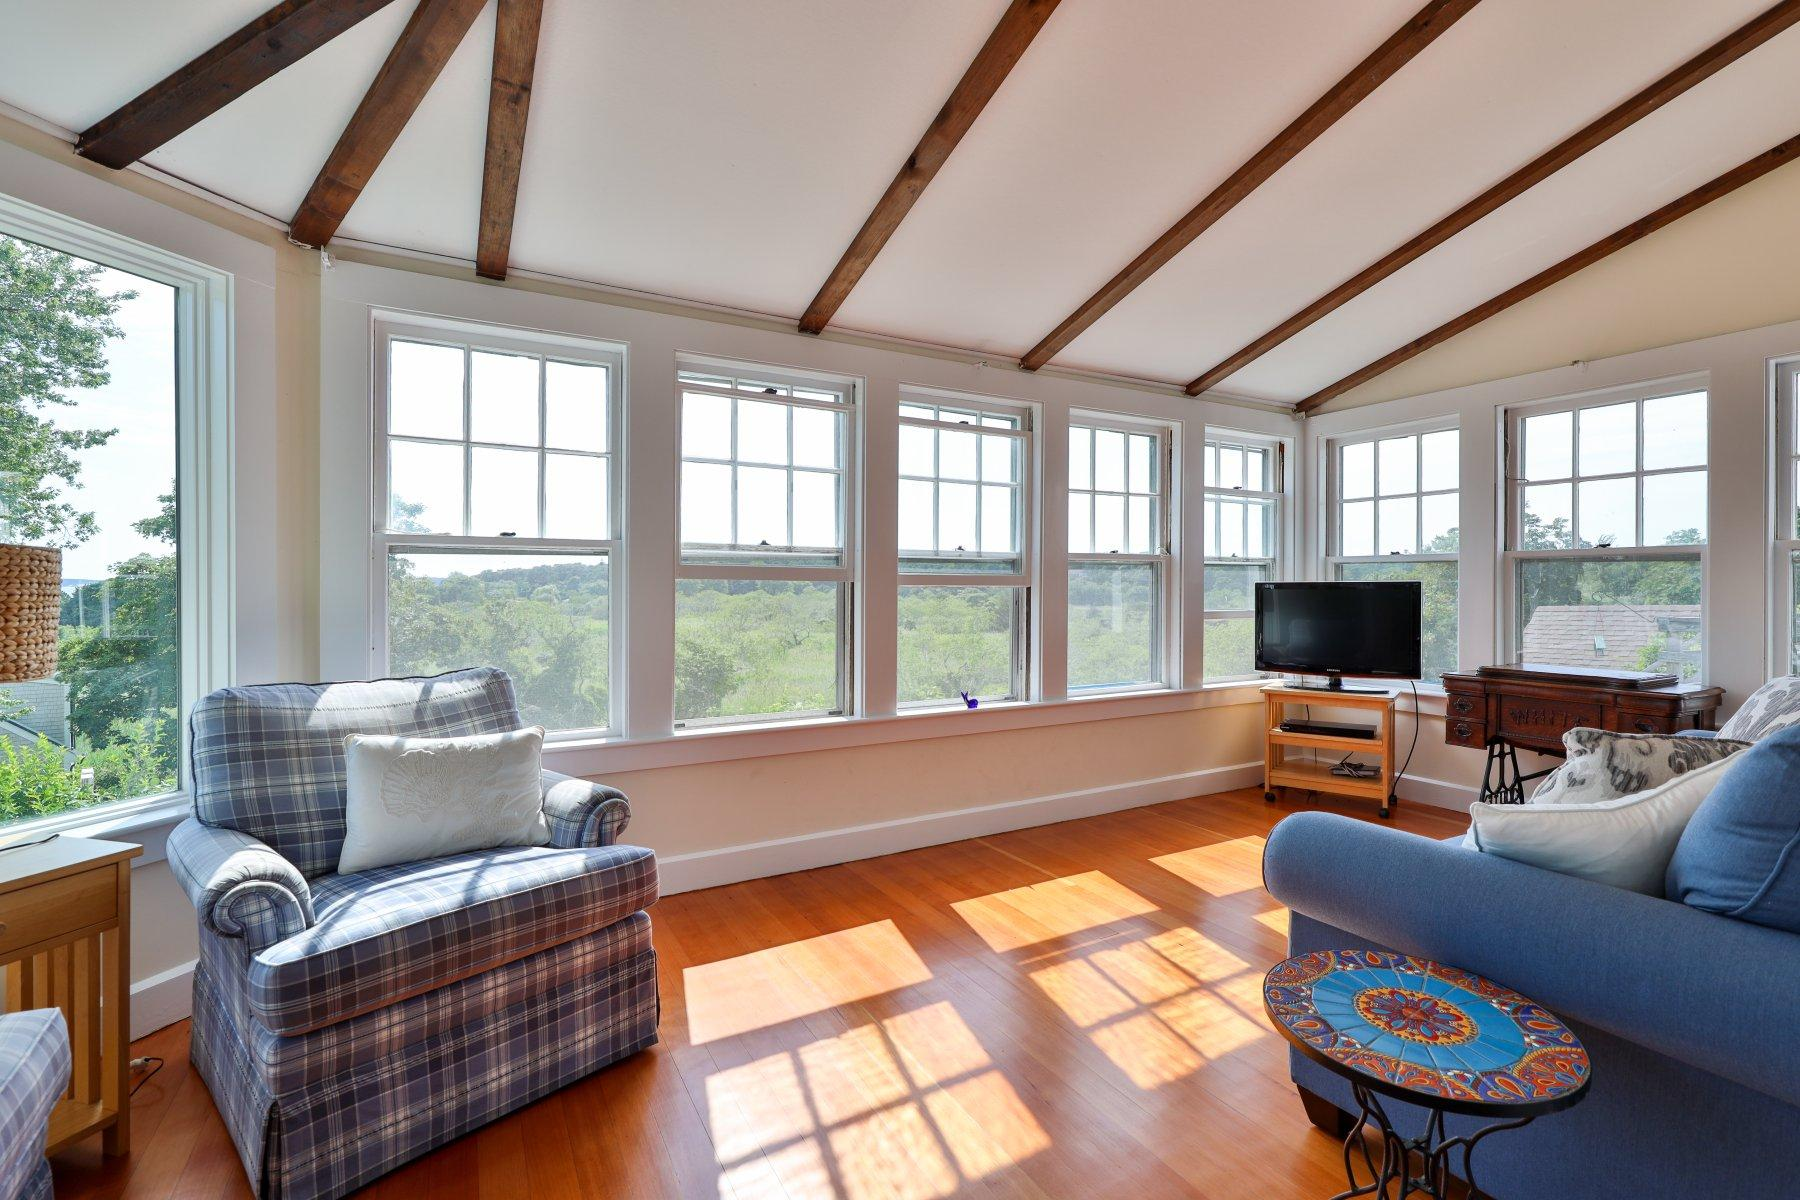 Single Family Homes for Sale at 99 Holbrook Avenue, Wellfleet, MA 99 Holbrook Avenue Wellfleet, Massachusetts 02667 United States